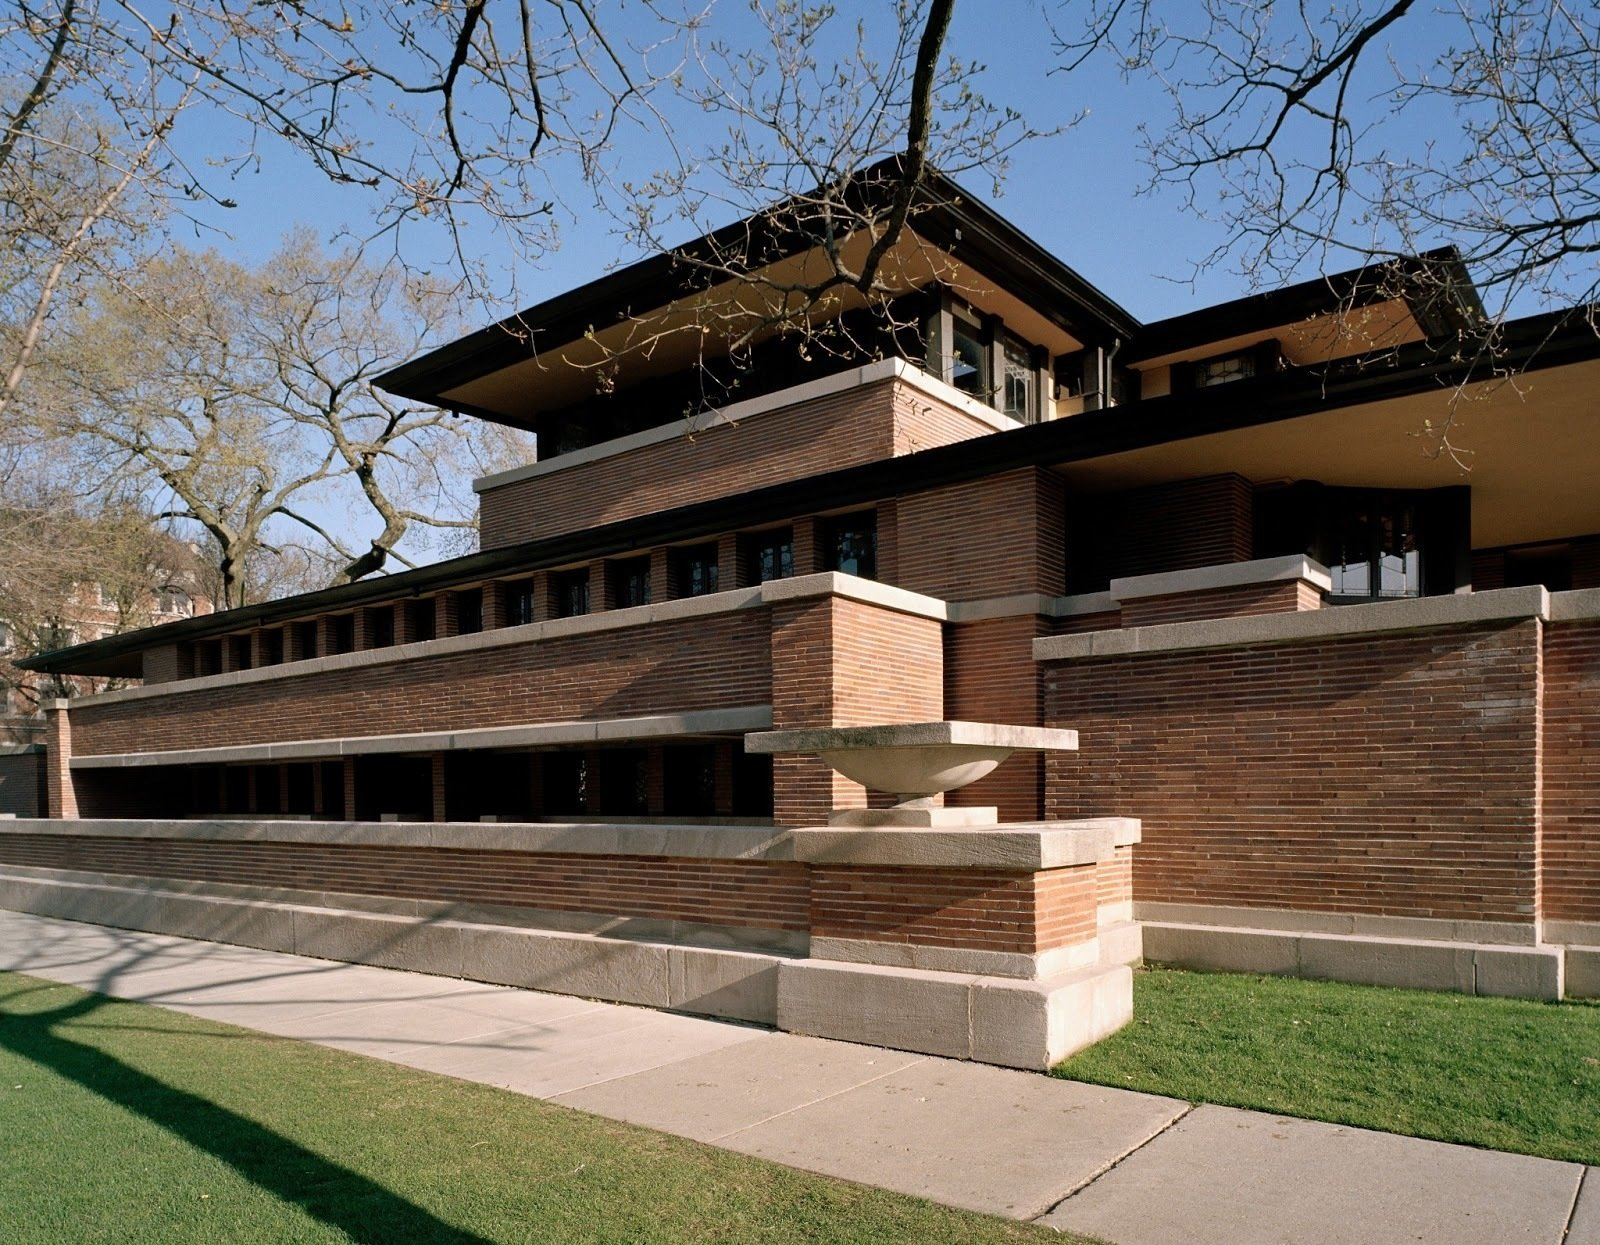 """Robie House, Chicago, Illinois (1910)""""Early in life I had to choose between honest arrogance and hypocritical humility. I chose honest arrogance."""" It should come as no surprise who uttered those words—the architect of the famed Robie House, Frank Lloyd Wright. The residence, with its tight recessed entry leading to dramatic light-filled openness, seamless space unencumbered by needless partitions, continuous bands of windows, its horizontal, low-slung form, and overhanging eaves, is what the architect called """"a cornerstone of American architecture.""""  Tiny Homes from Buildings That Changed America"""